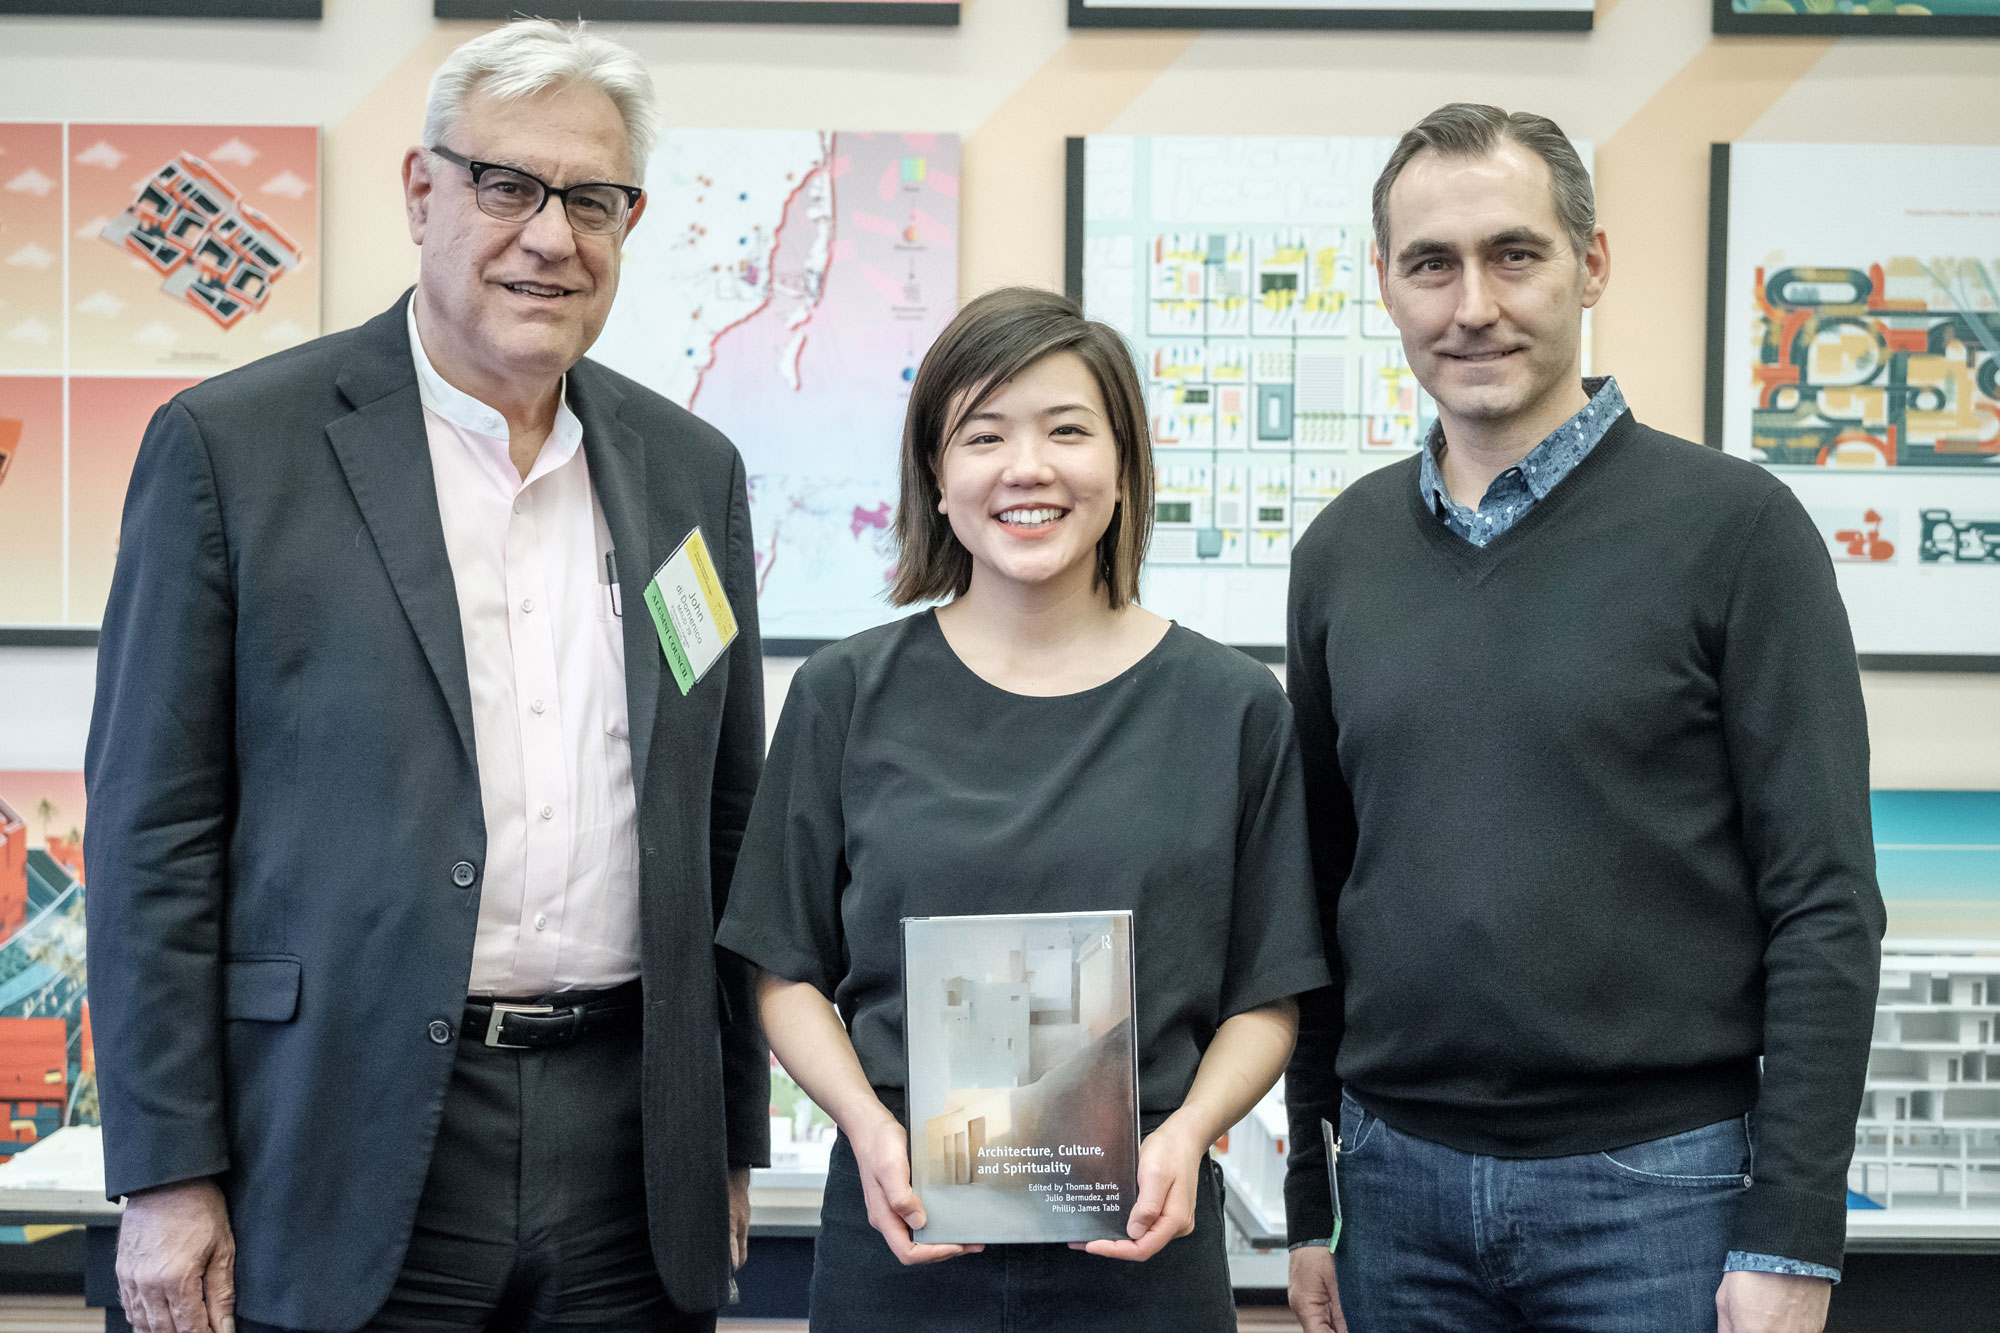 Chantine Akiyama MArch '19 with her book selection Architecture, Culture, and Spirituality by Thomas Barrie and Julio Bermudez. She is photographed with Alumni Council members John di Domenico MAUD '79 (left) and Chris Bourassa AMDP '09 (right).